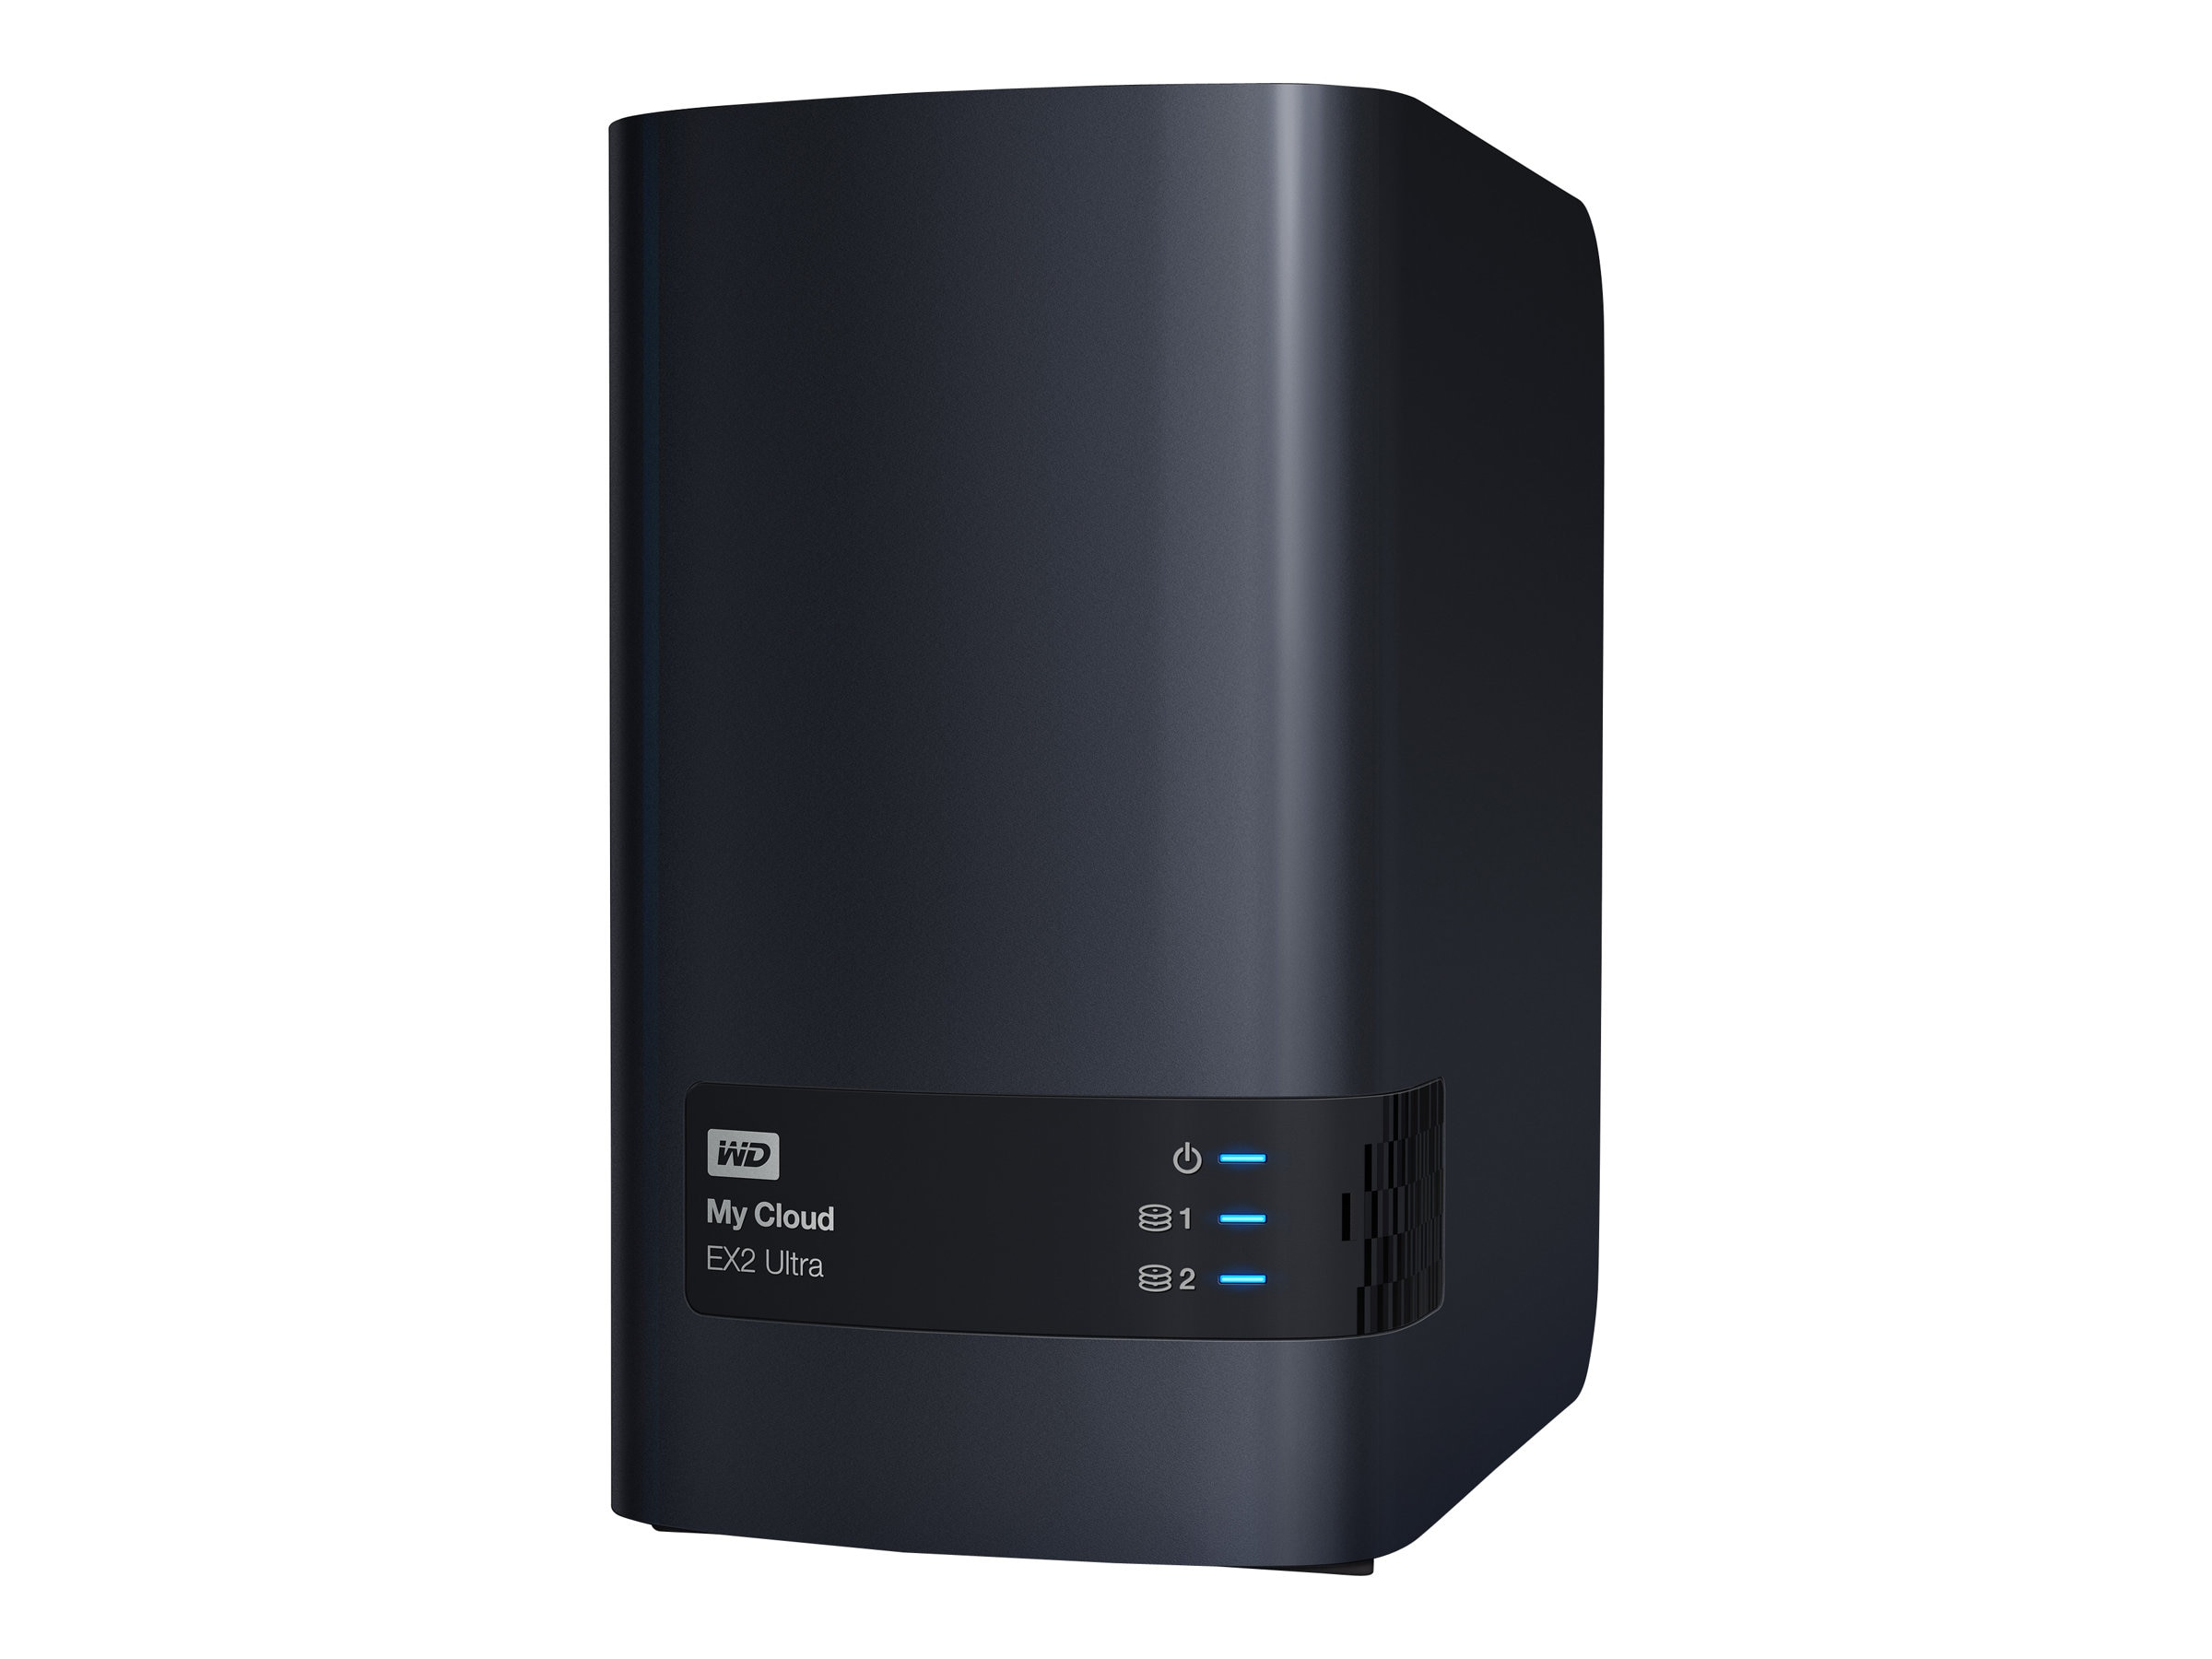 WD WD My Cloud EX2 Ultra Private Cloud NAS Storage - Diskless, WDBVBZ0000NCH